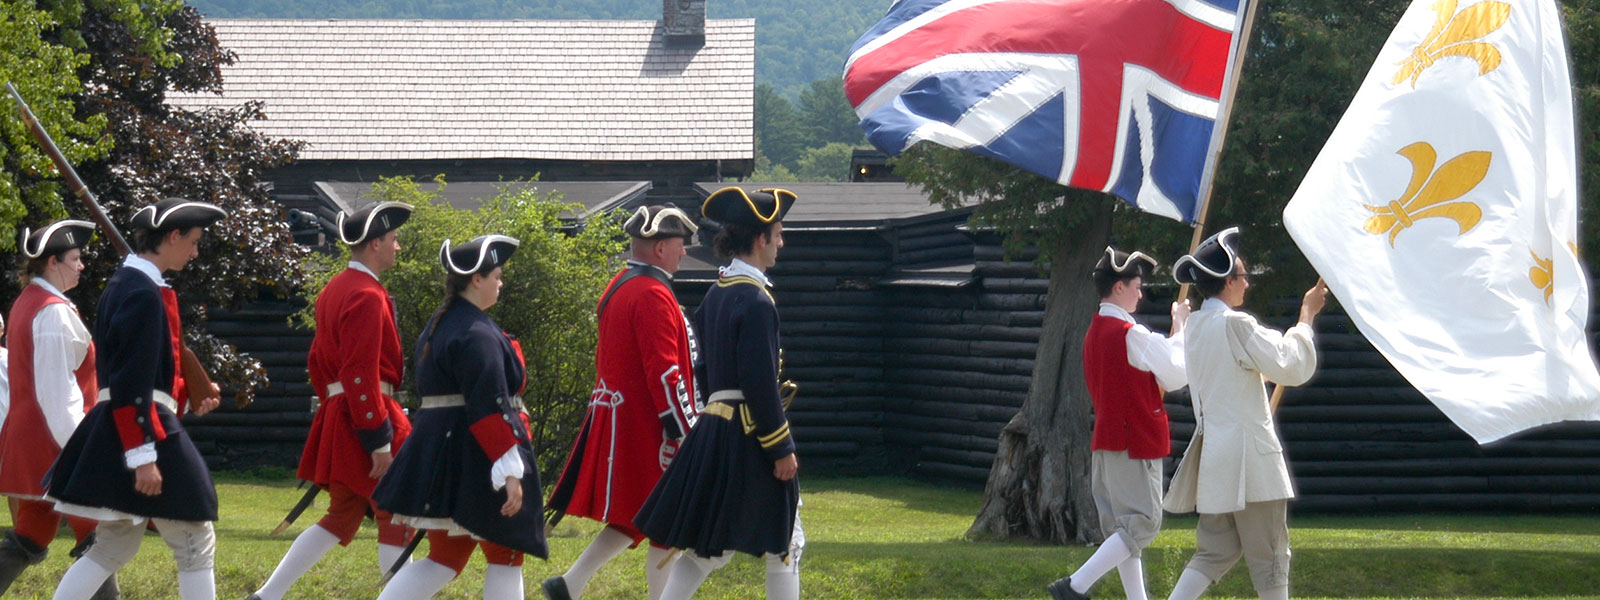 Events at Fort William Henry